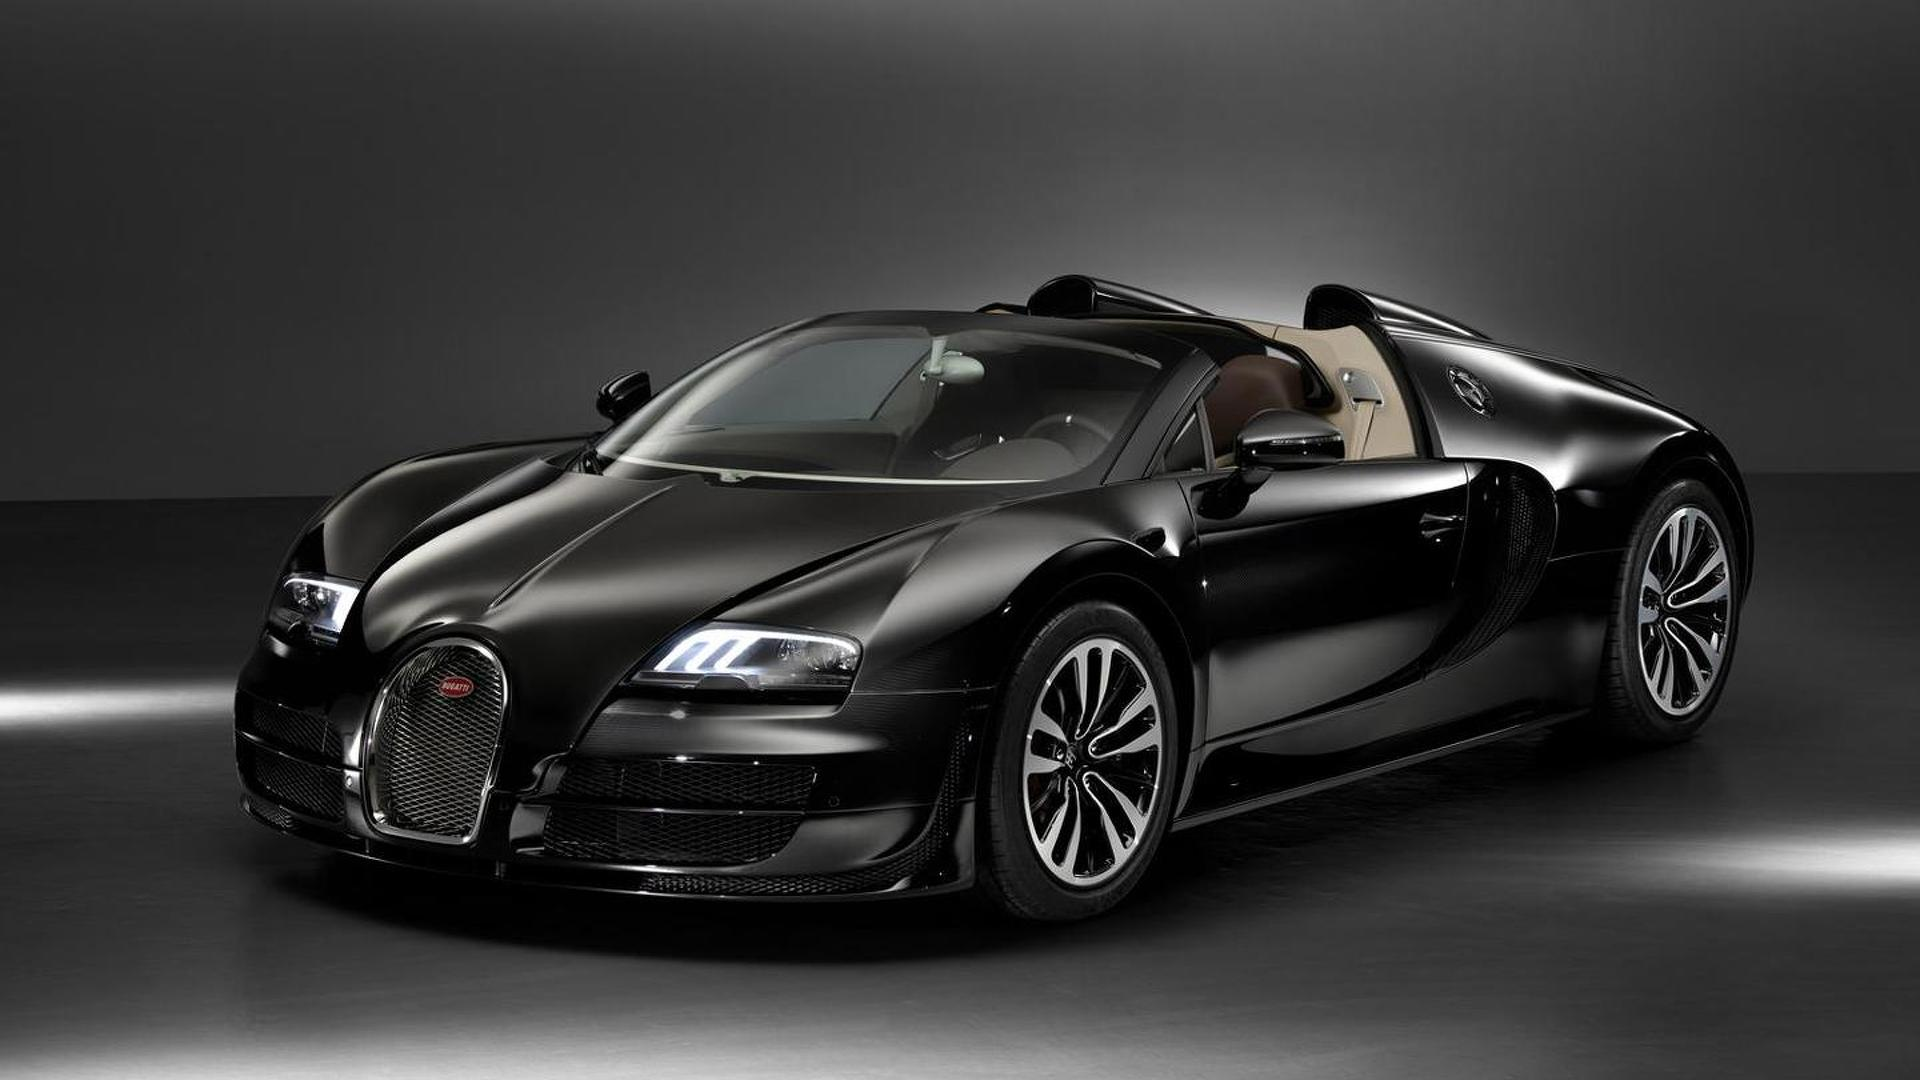 Bugatti having problems selling the remaining 40 Veyrons